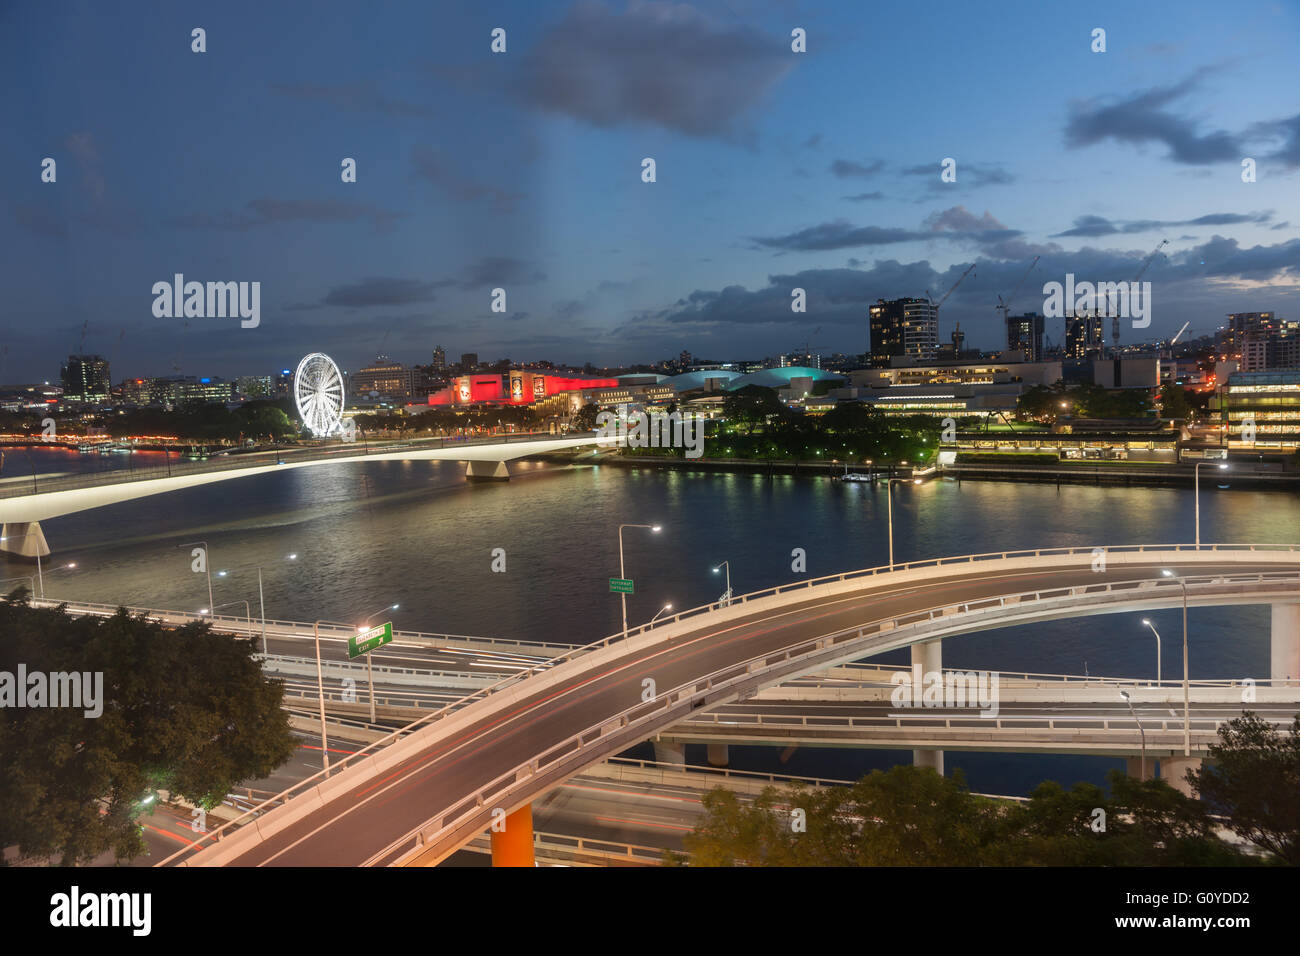 Brisbane night lights over tiered roadways river and South Bank buildings and giant ferris wheel - Stock Image